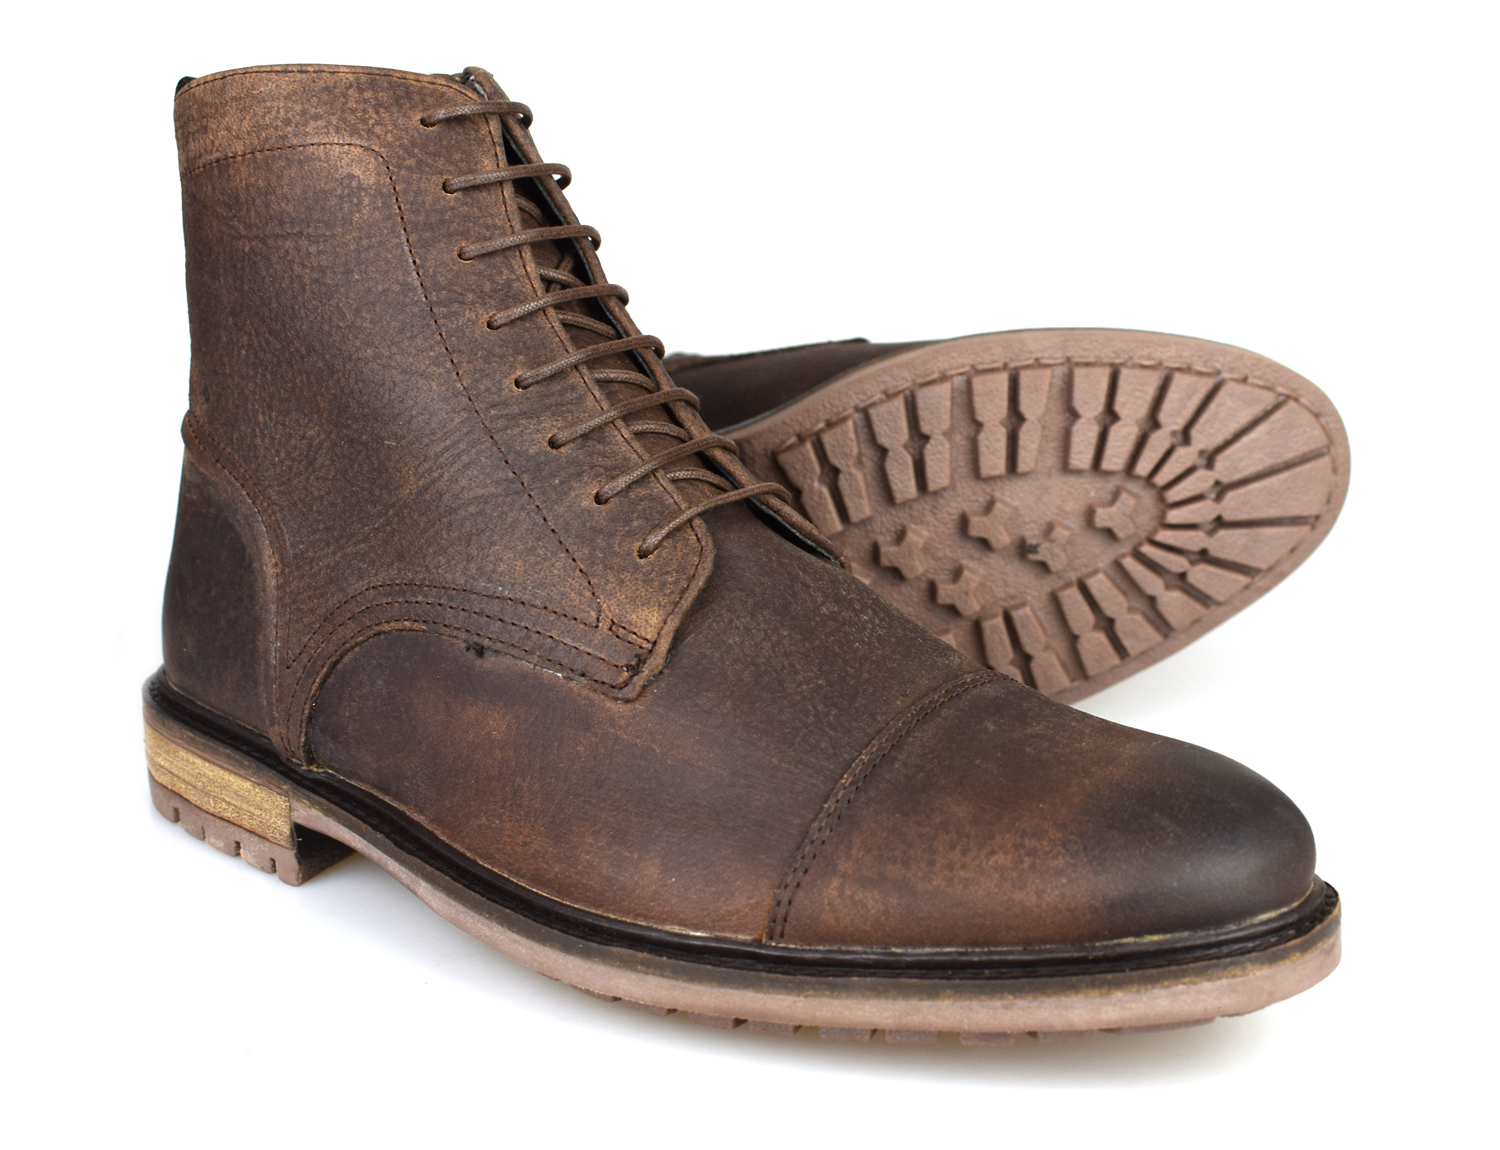 bd478bb3c248d5 This is a fantastic pair of worker style boots from Silver Street. They  have a great rustic feel to them that would look perfect with a pair of  jeans.